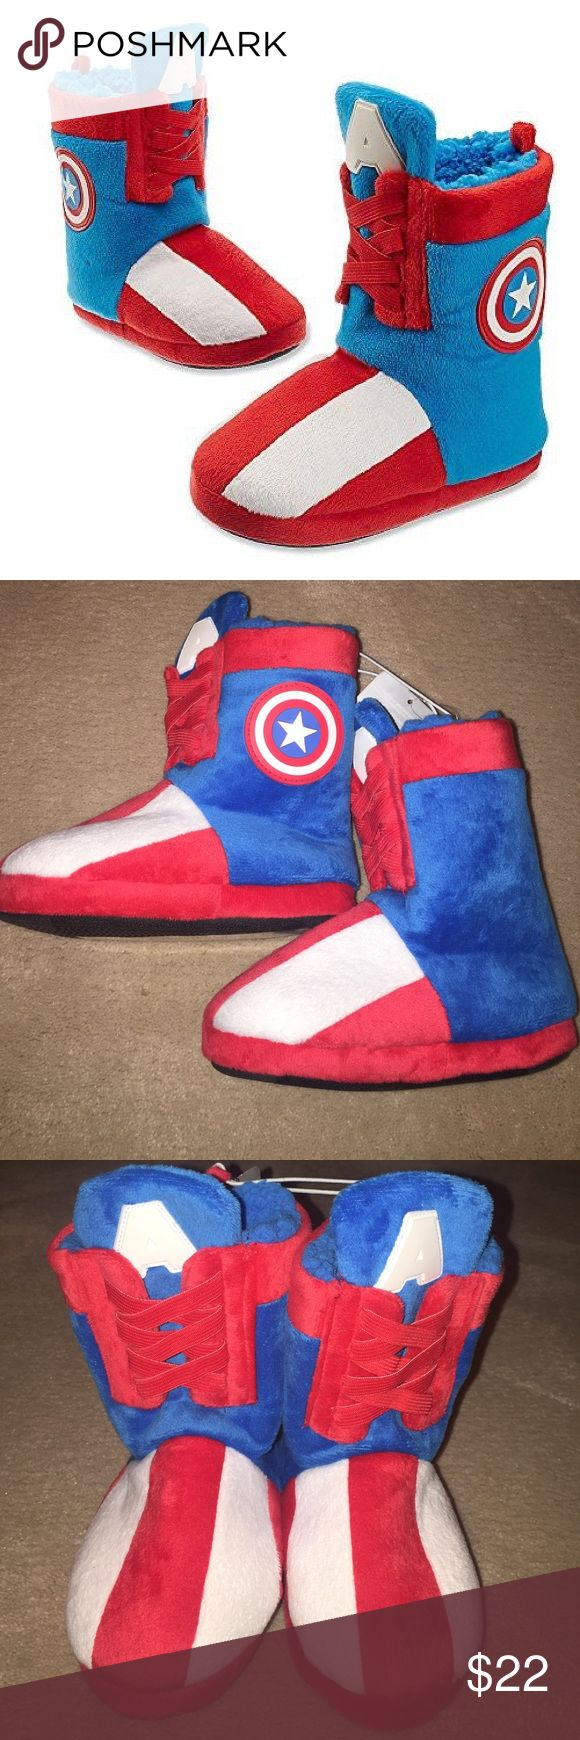 Captain America Boot Slippers Suitable for boys or girls. New with tags. Disney Marvel Boot Slippers.  Great addition to your Captain America Halloween Costume or as a gift. Child size 9/10. Disney Shoes Slippers